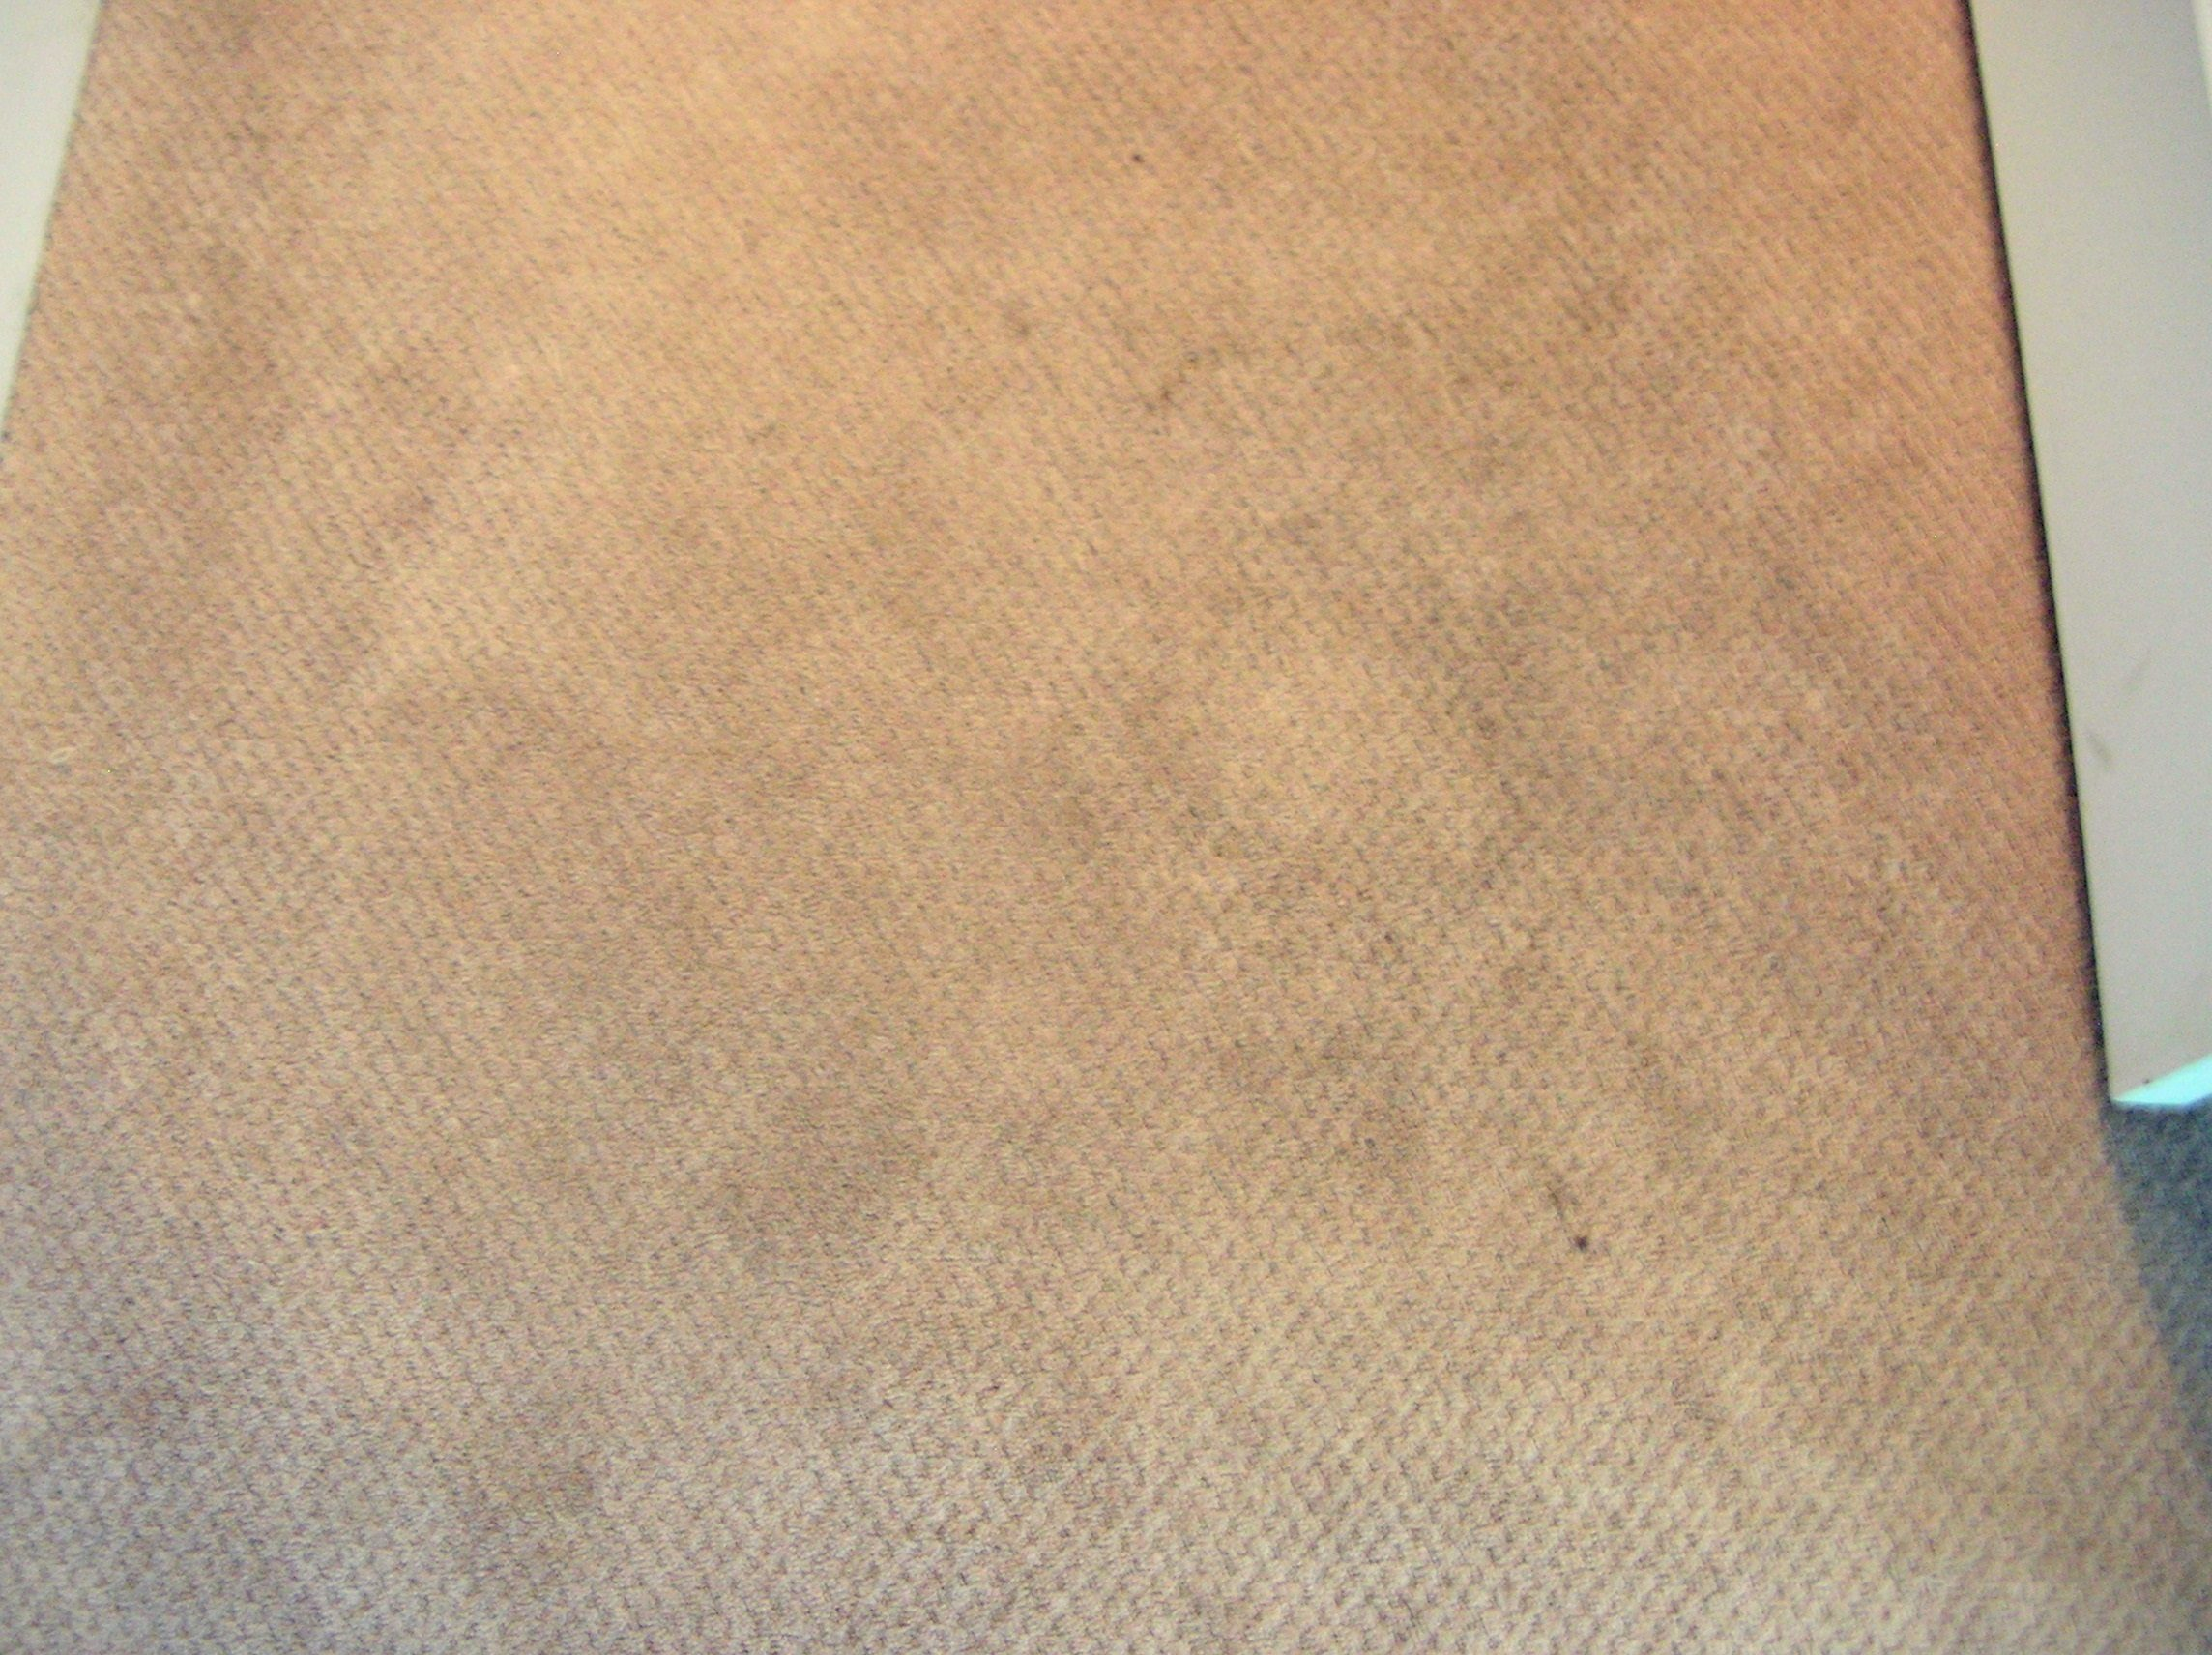 Mohawk carpet warranty complaints meze blog for Mohawk flooring warranty